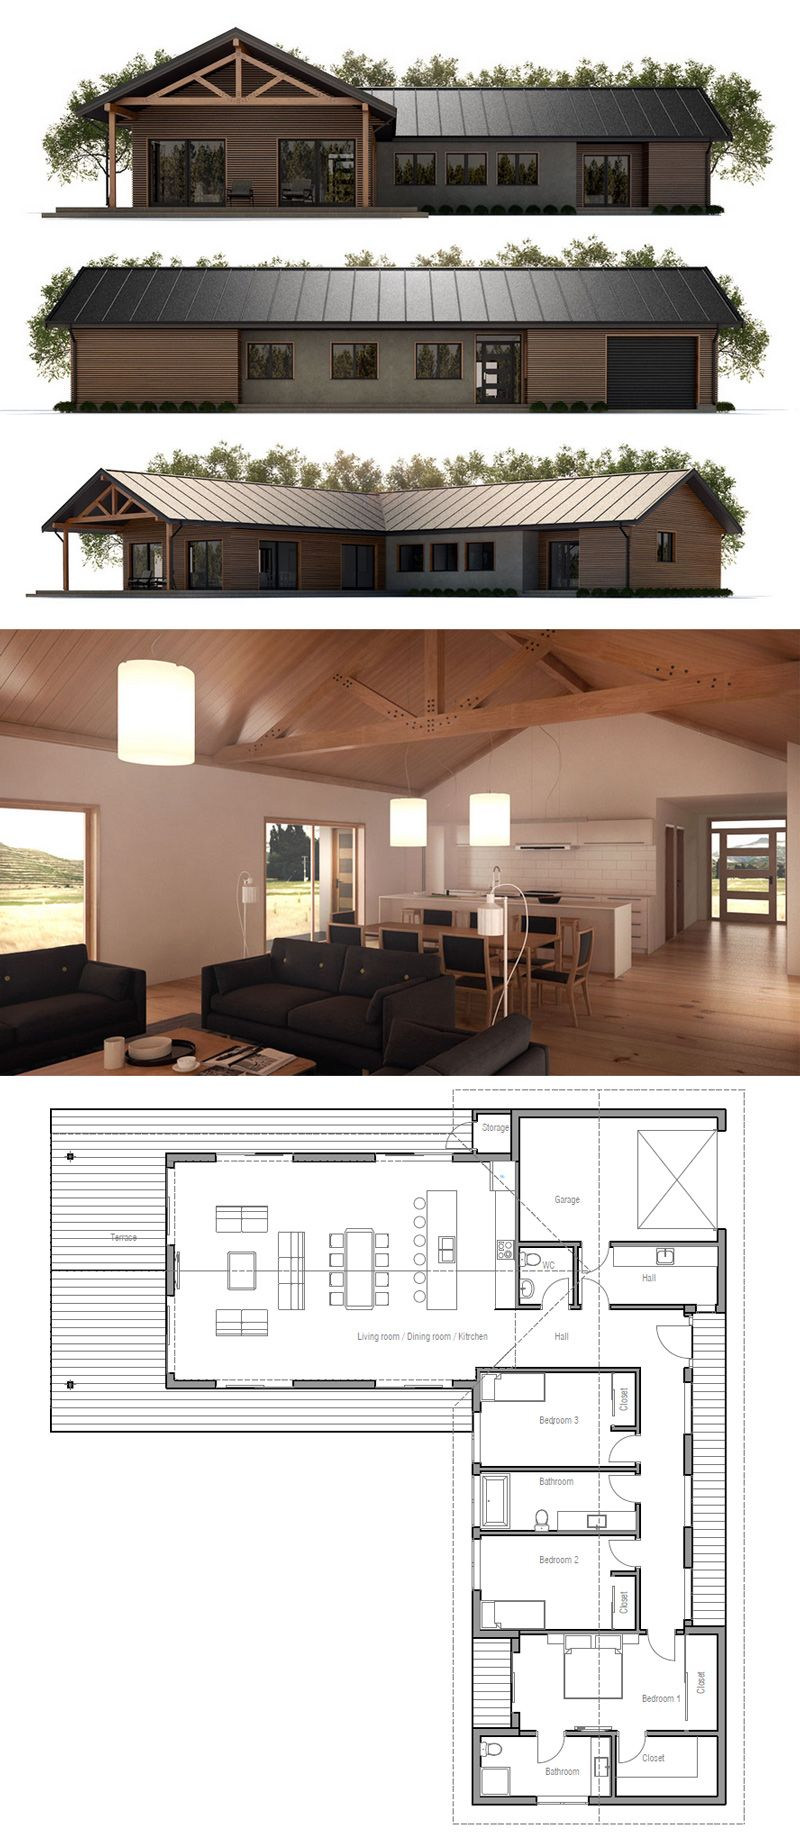 Pleasing Contemporary Style House Plan 3 Beds 2 5 Baths 2180 Sq Ft Plan Largest Home Design Picture Inspirations Pitcheantrous